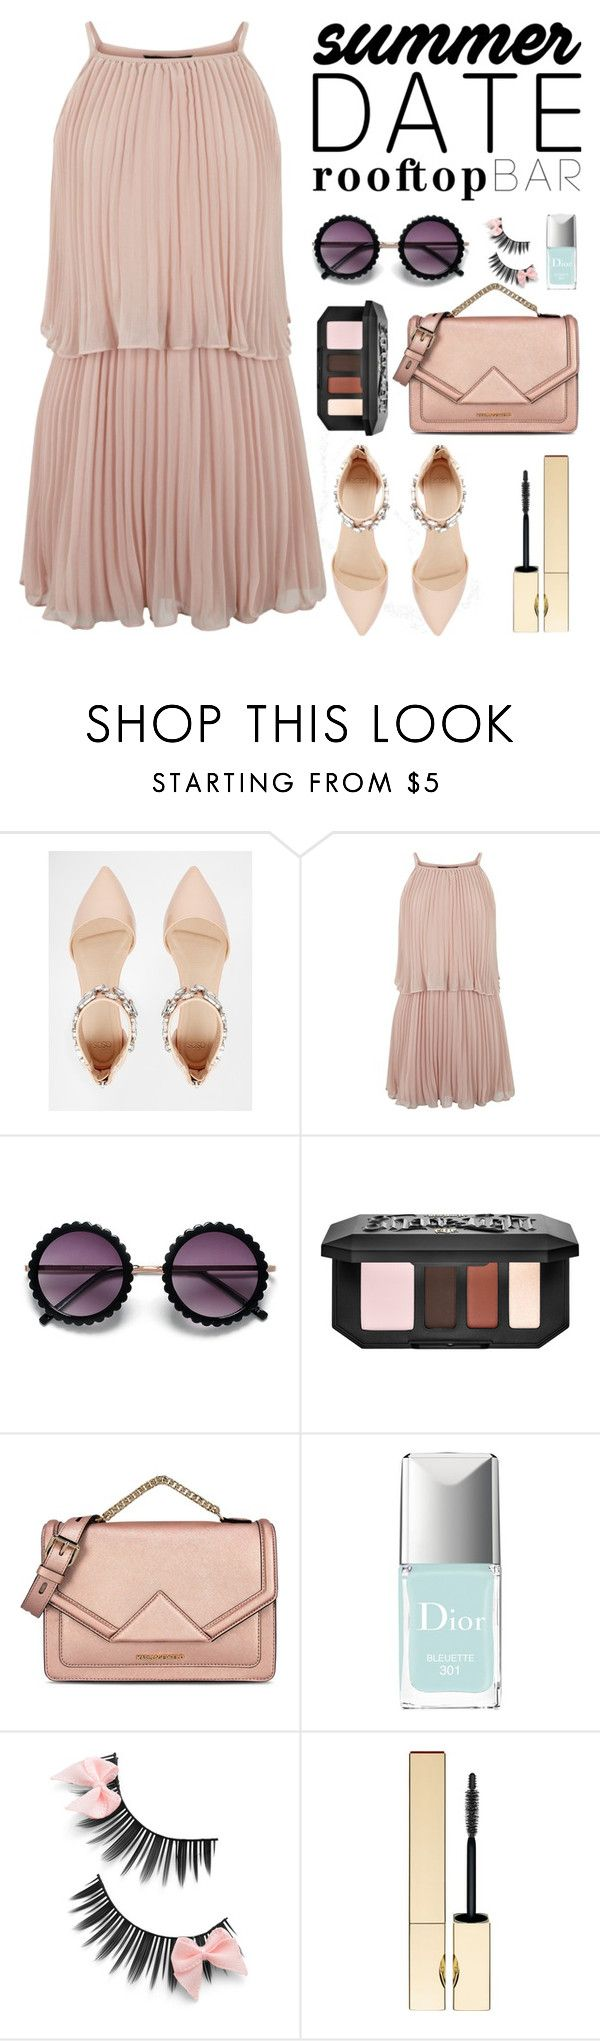 """""""Summer Date"""" by ante-panda ❤ liked on Polyvore featuring ASOS, New Look, Kat Von D, Karl Lagerfeld, Christian Dior and Clarins"""